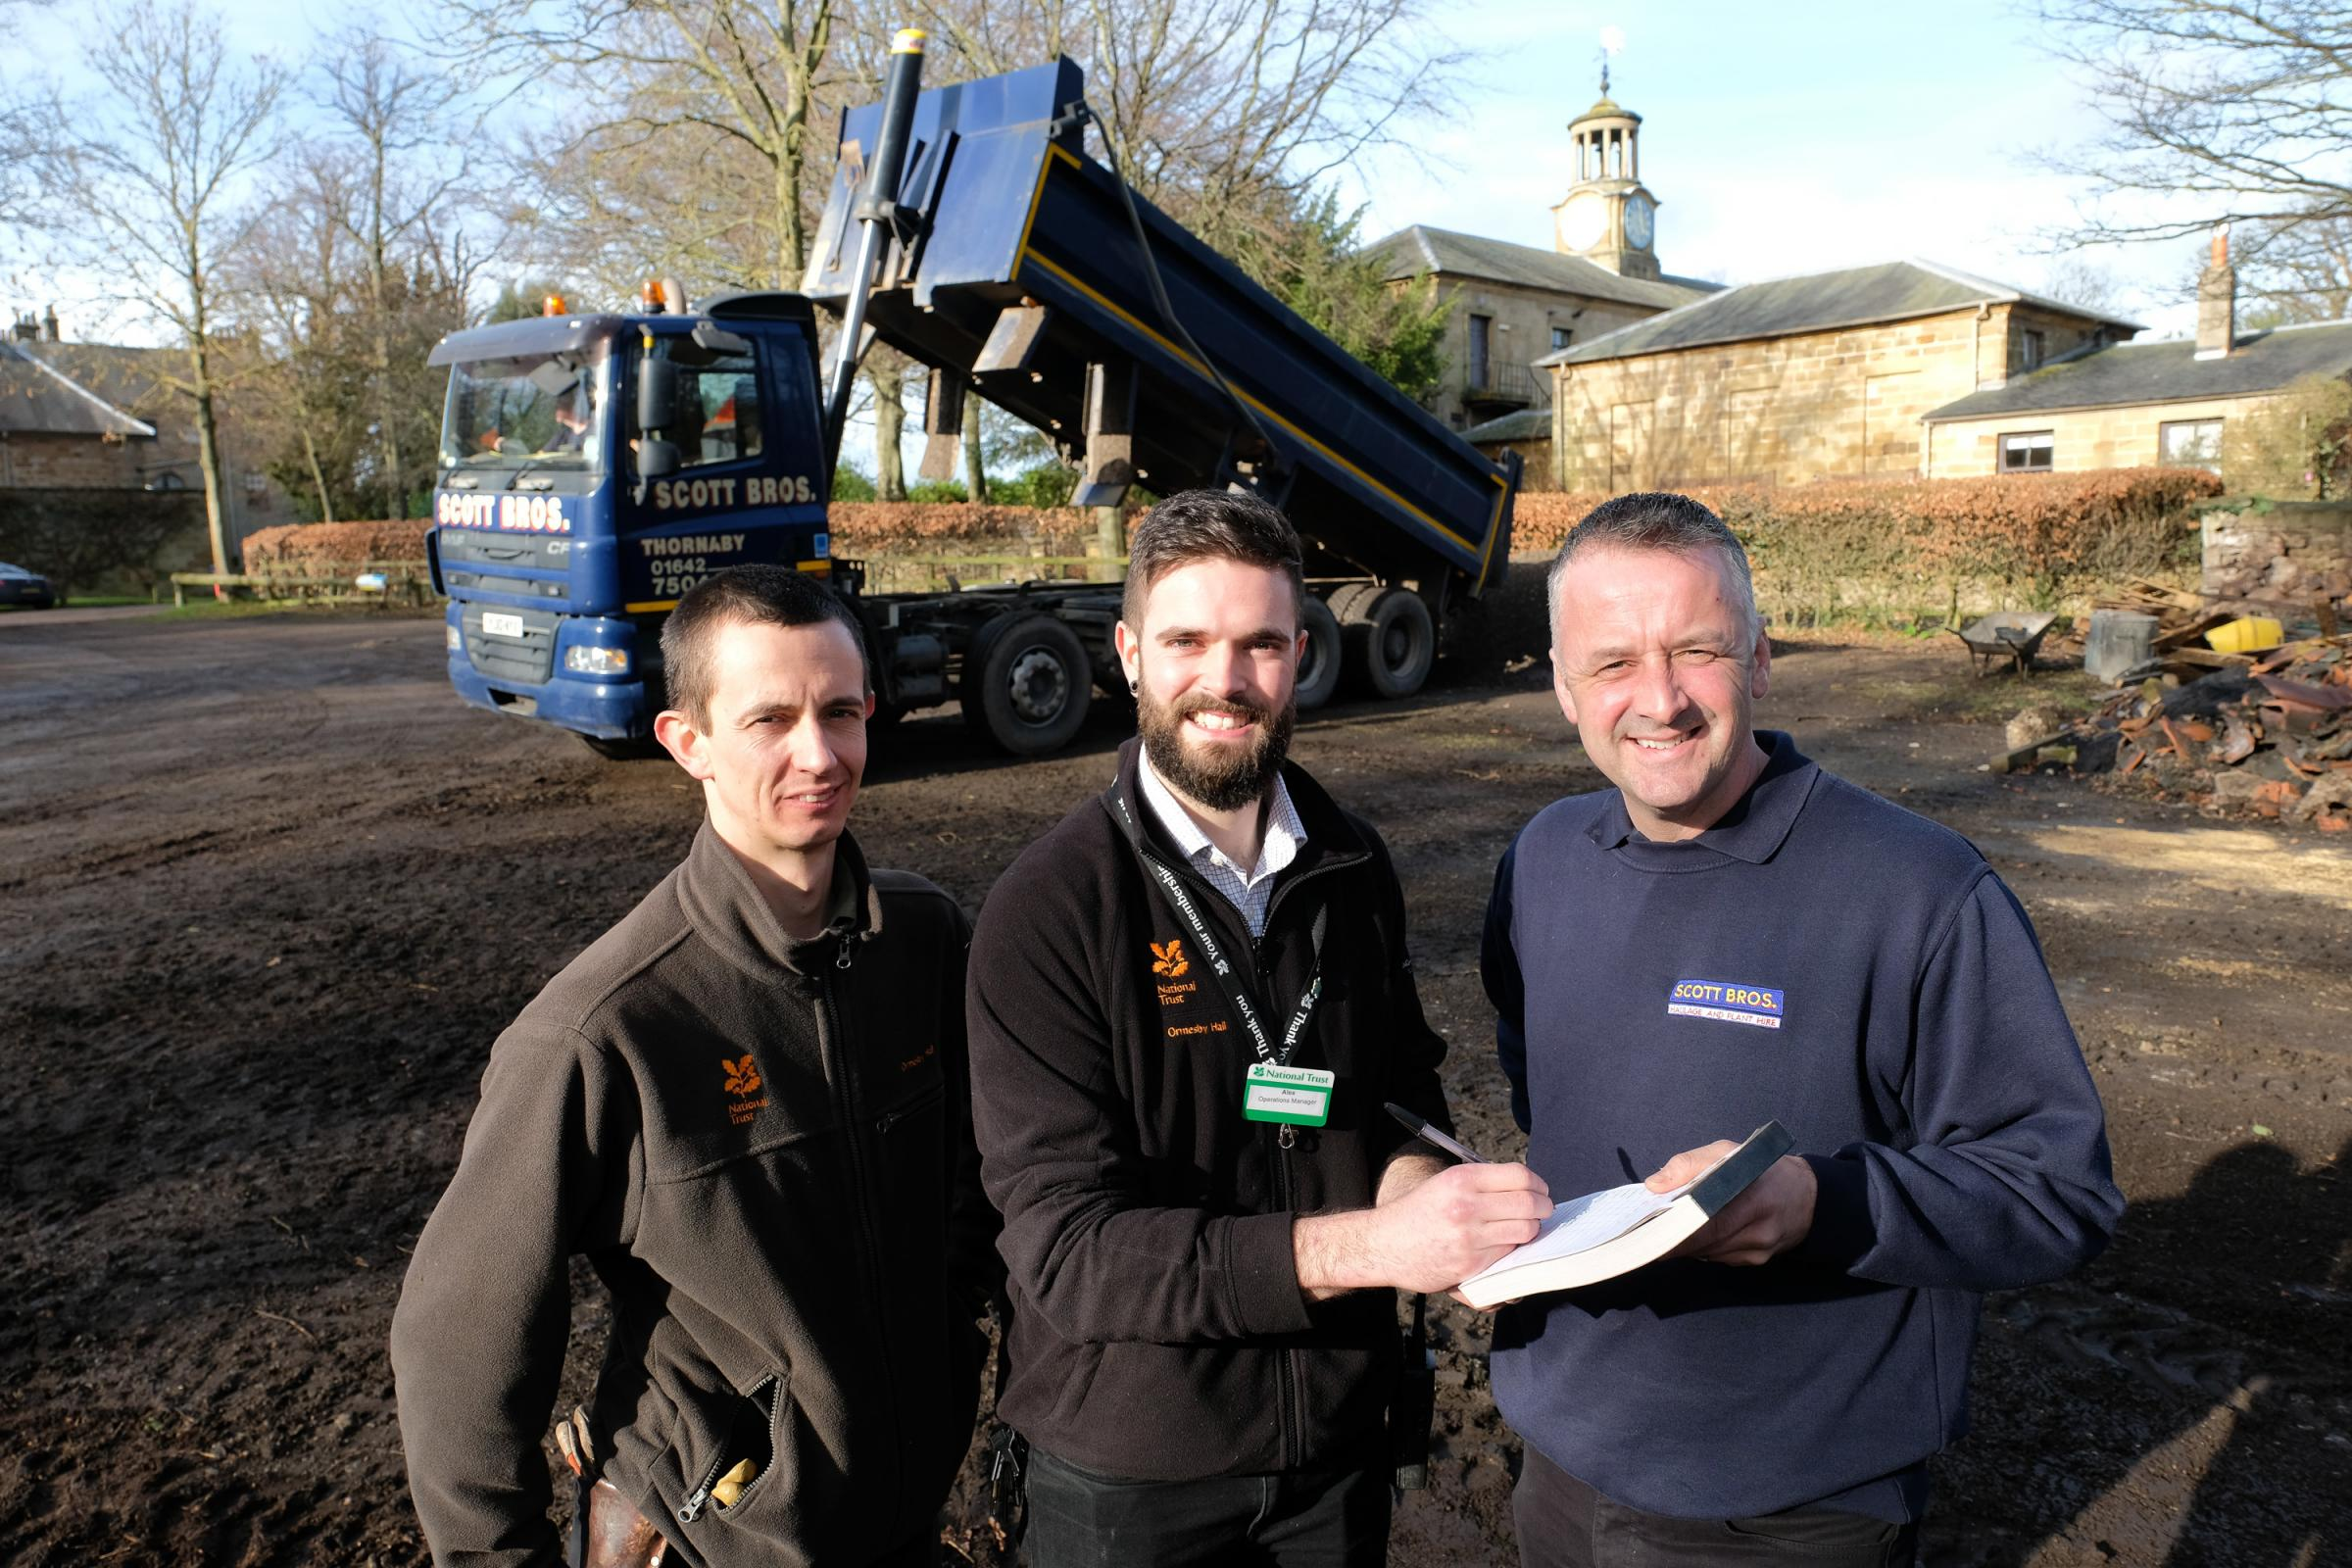 HALL REVAMP: David Husband, head gardener; Alex Hennessey, operations manager at Ormesby Hall and Peter Scott of Scott Bros